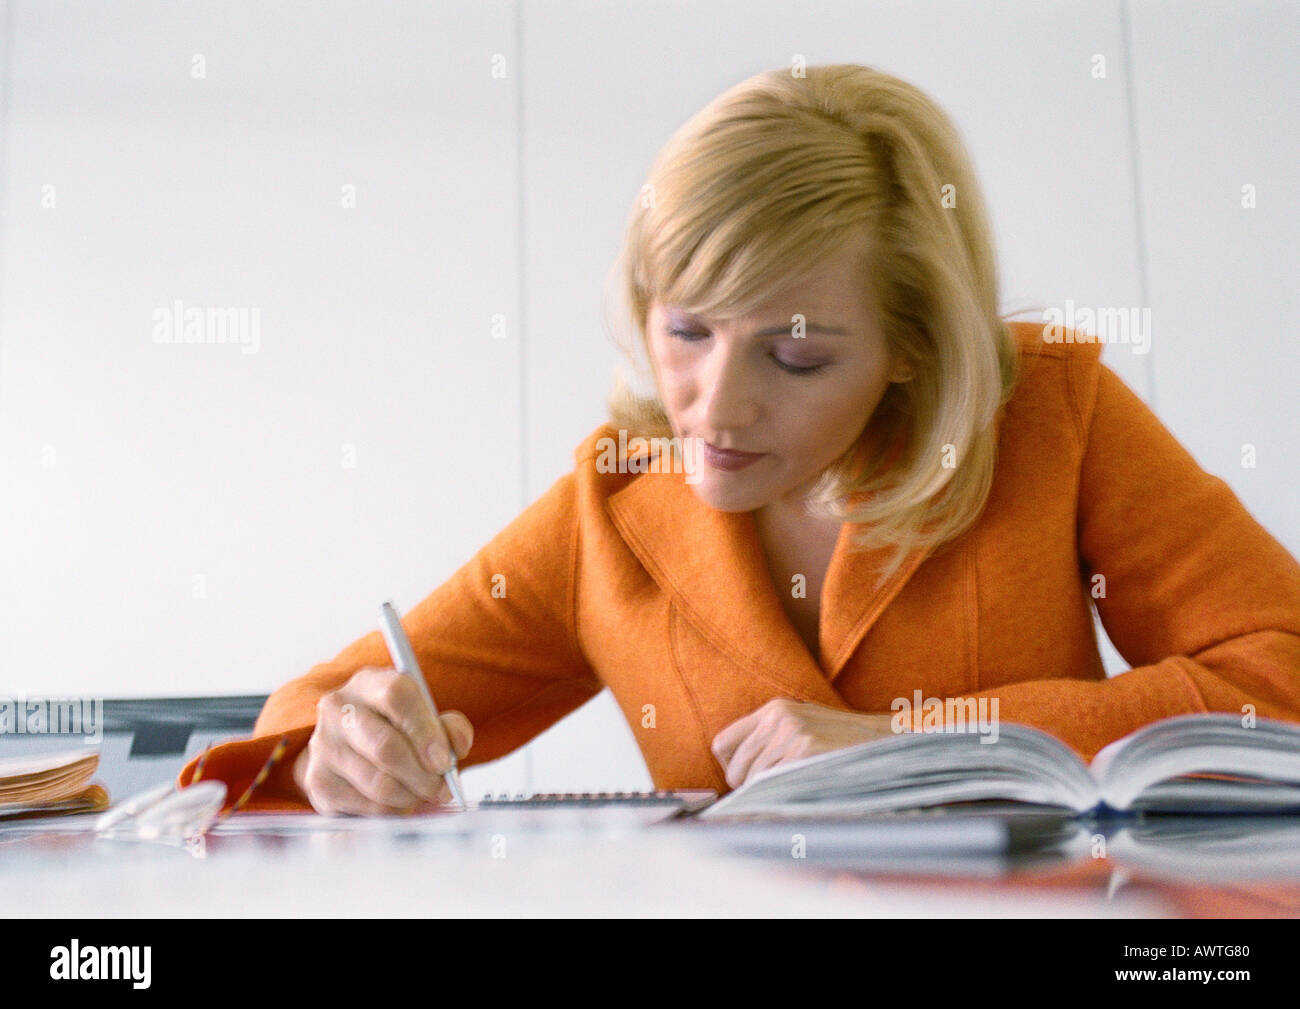 Businesswoman working at desk. - Stock Image